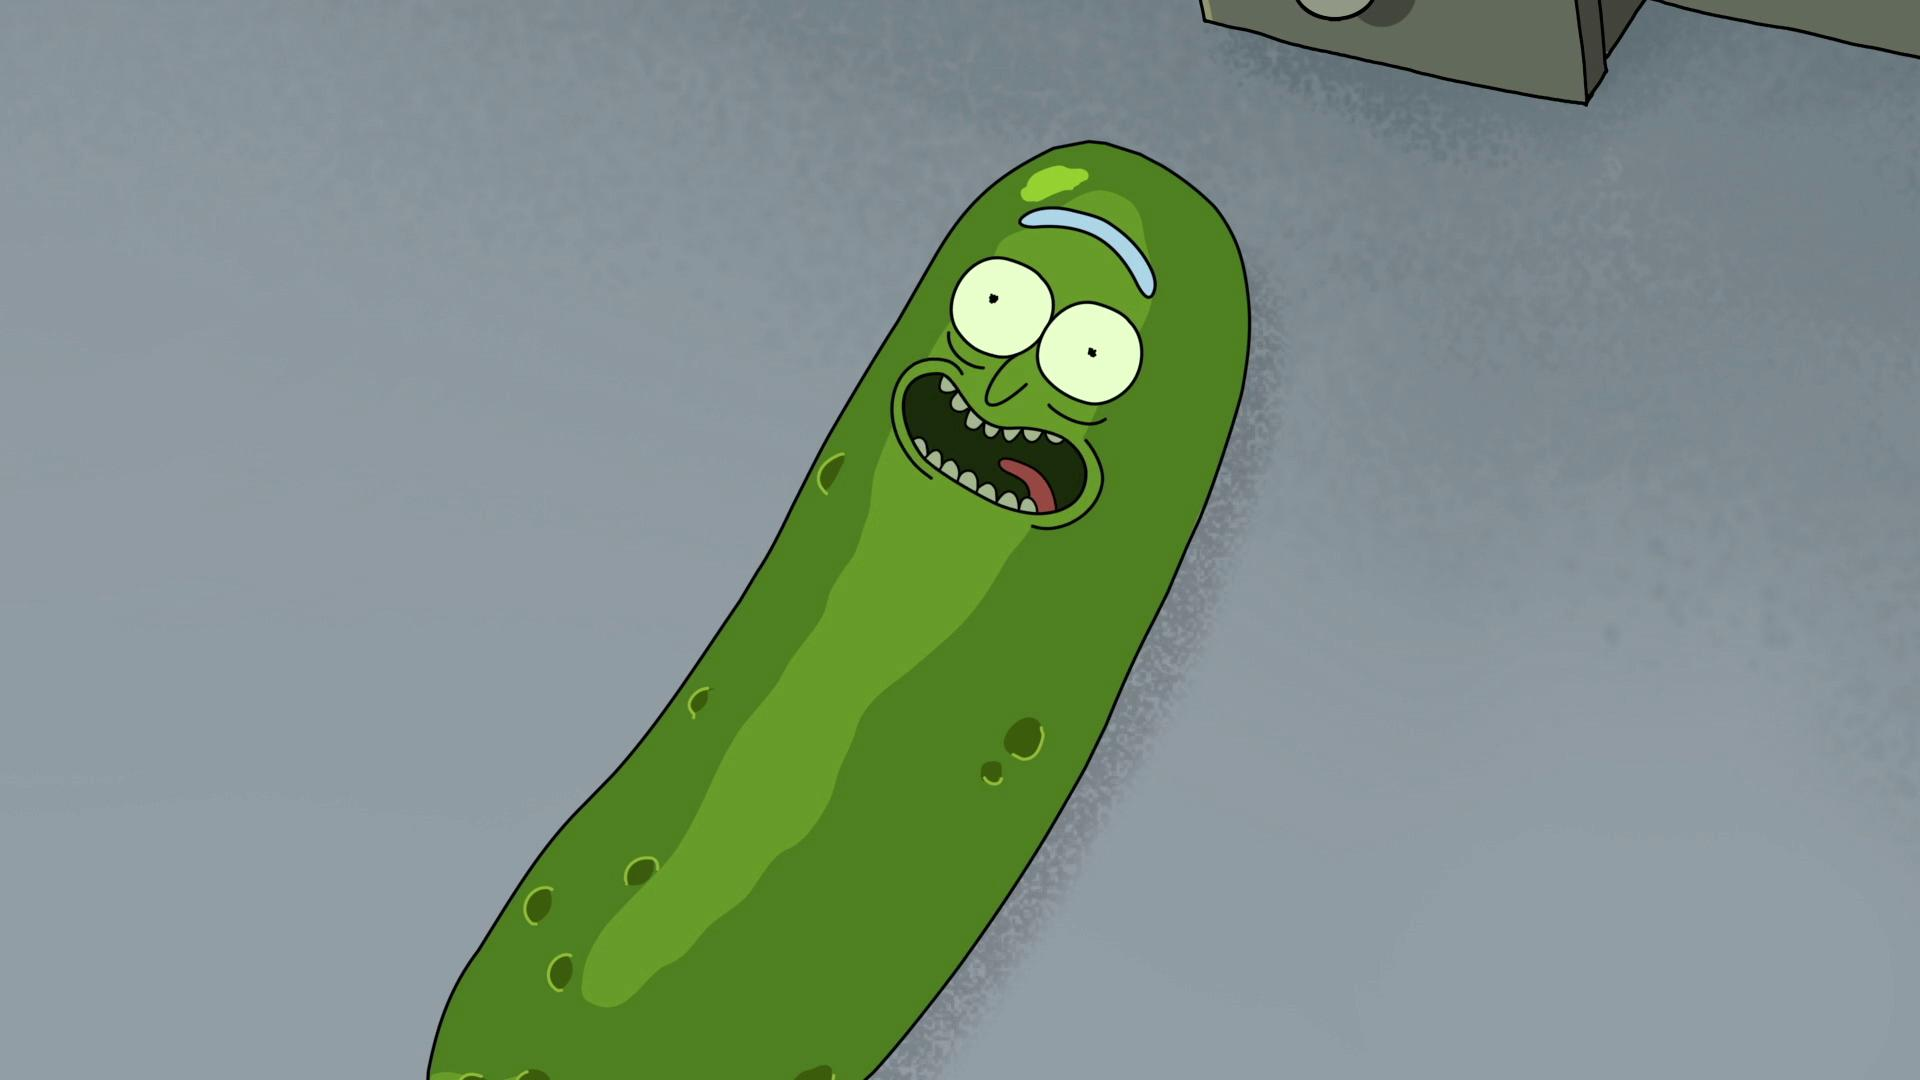 rick morty pickle